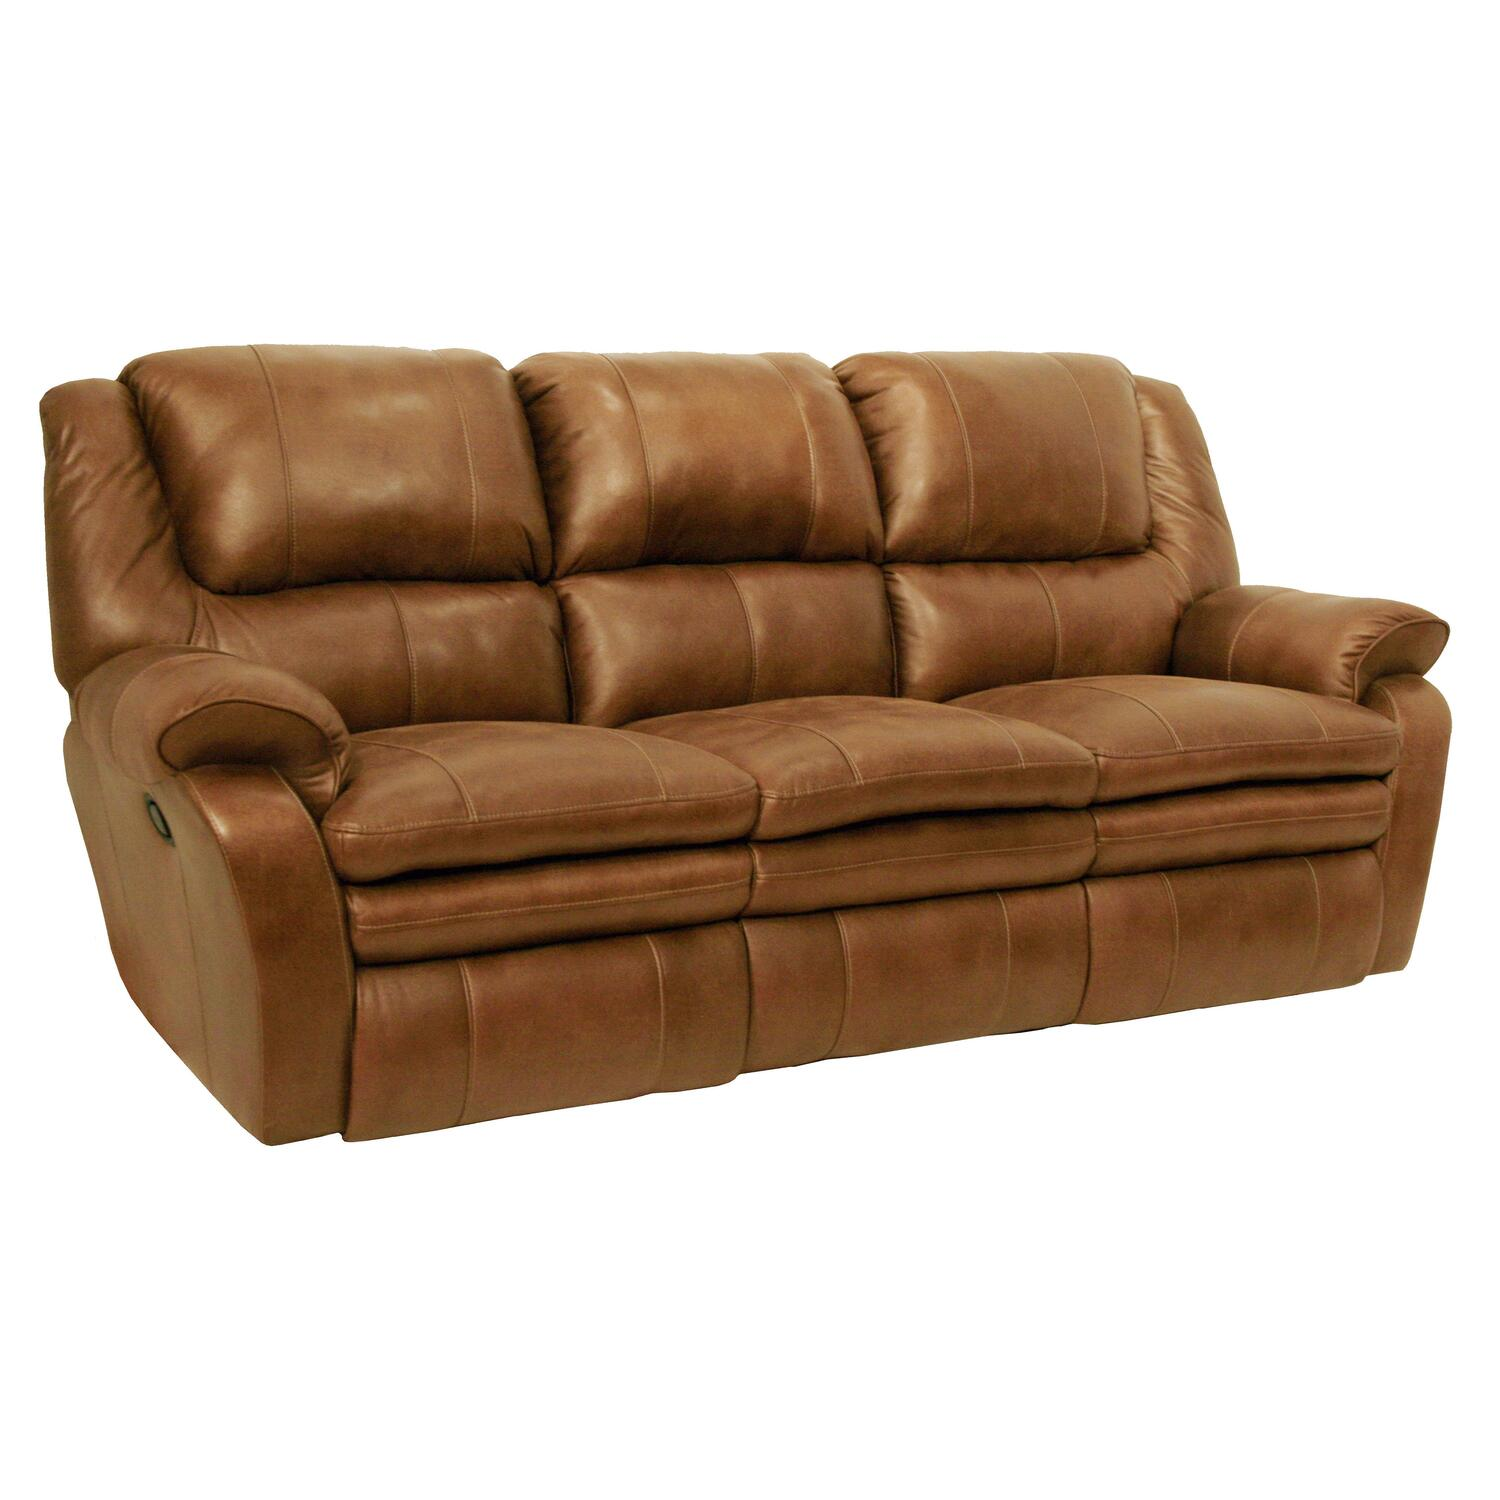 Catnapper cordoba reclining sofa by oj commerce 3361 Catnapper loveseat recliner